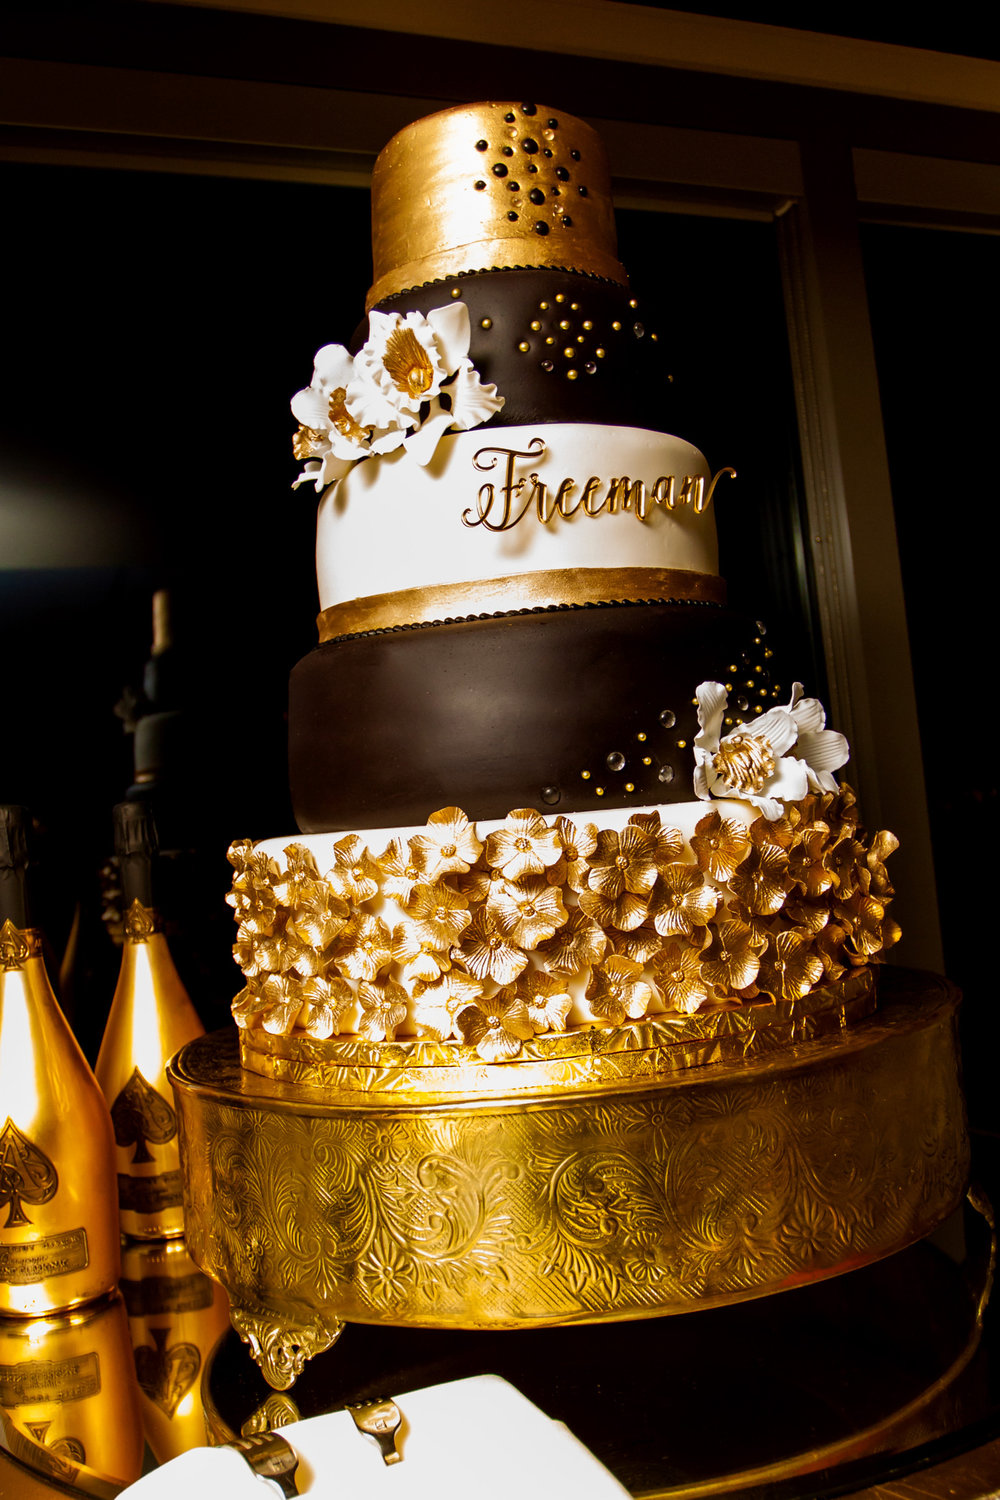 Gold and Chocolate Cake | Edible Art Bakery of Raleigh